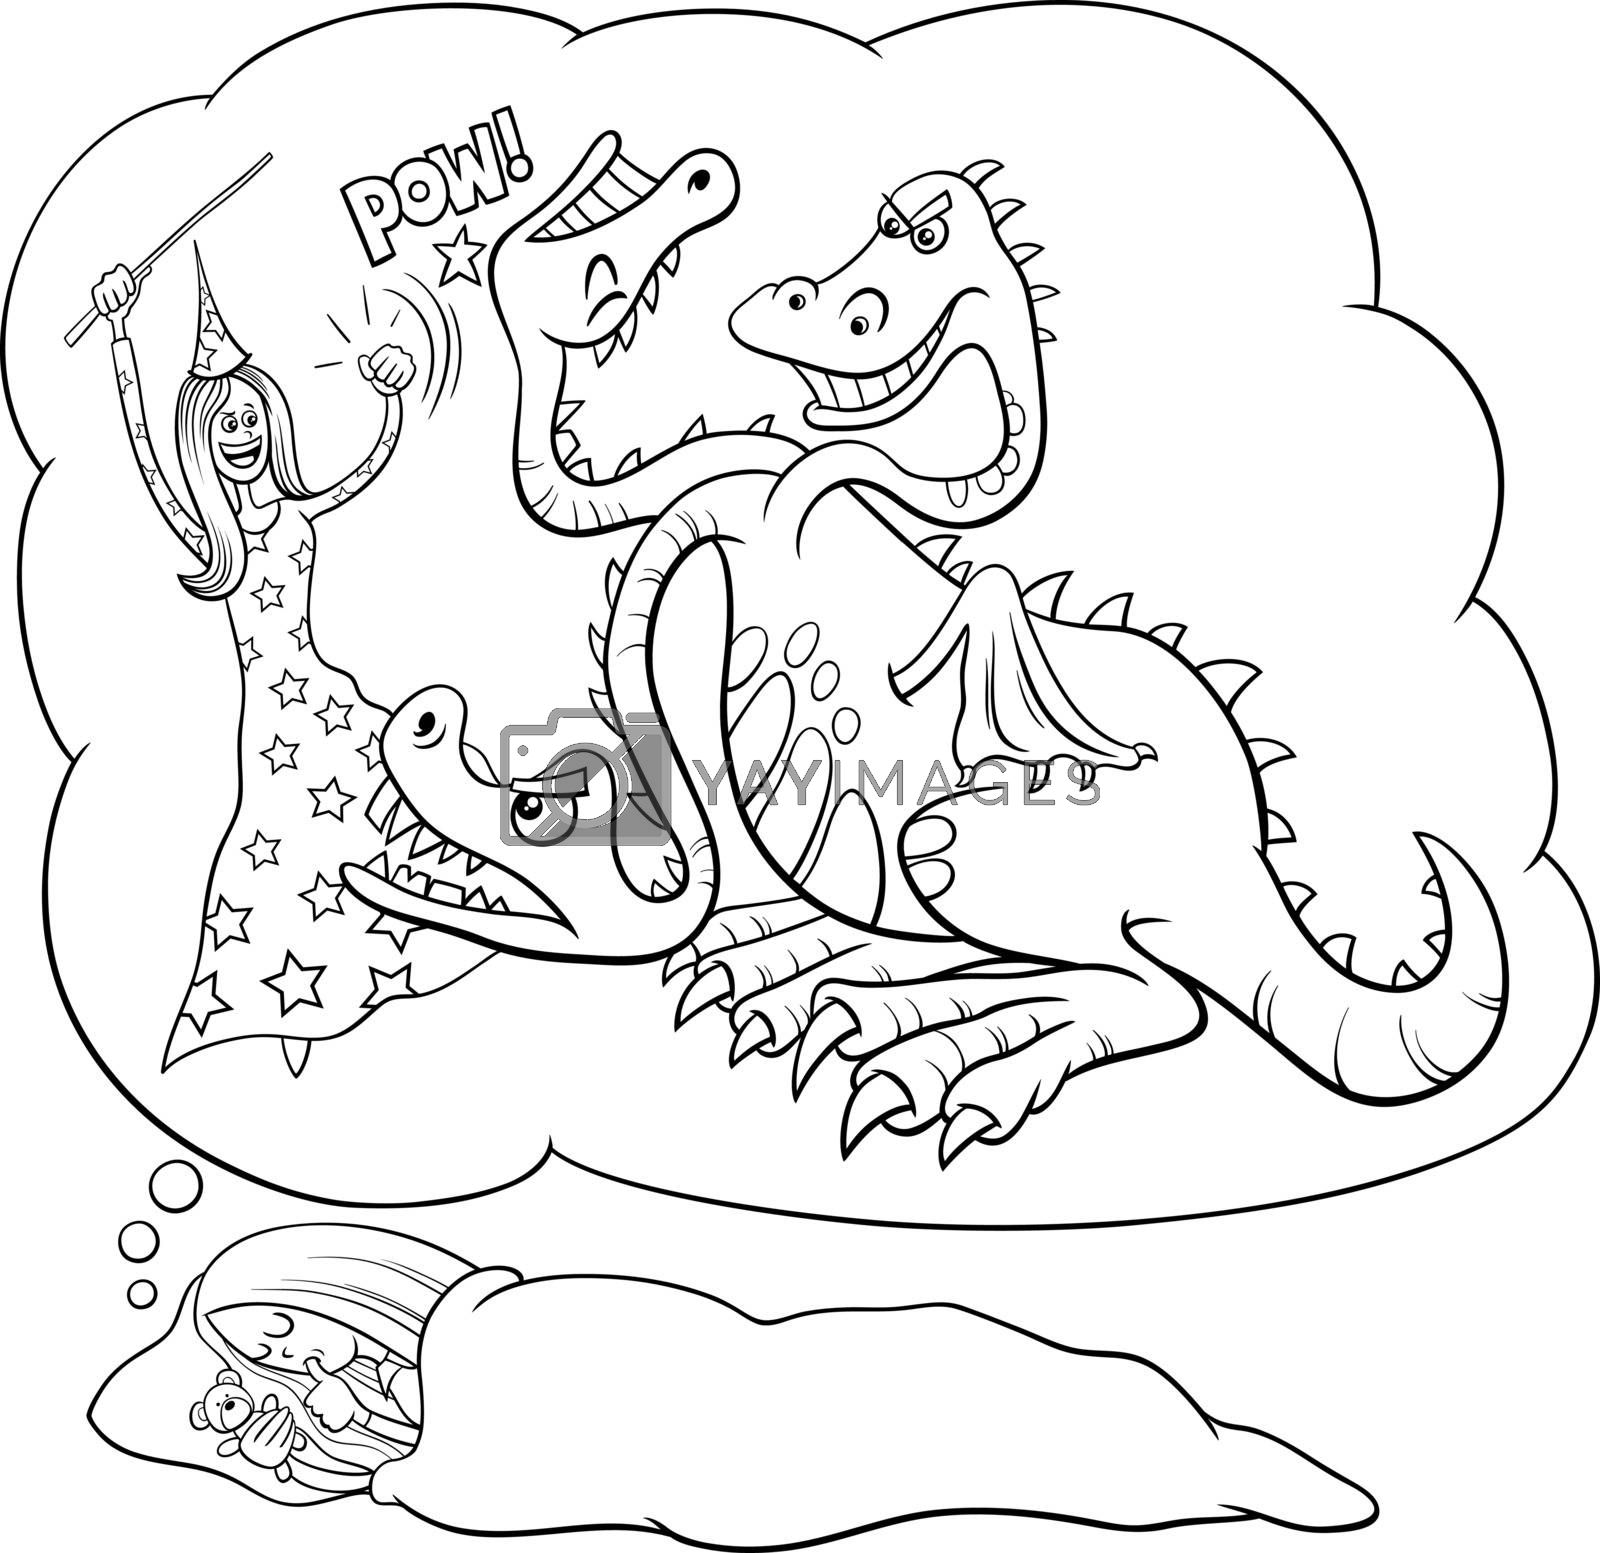 Black and white cartoon illustration of sleeping young girl dreaming about defeating the dragon coloring book page